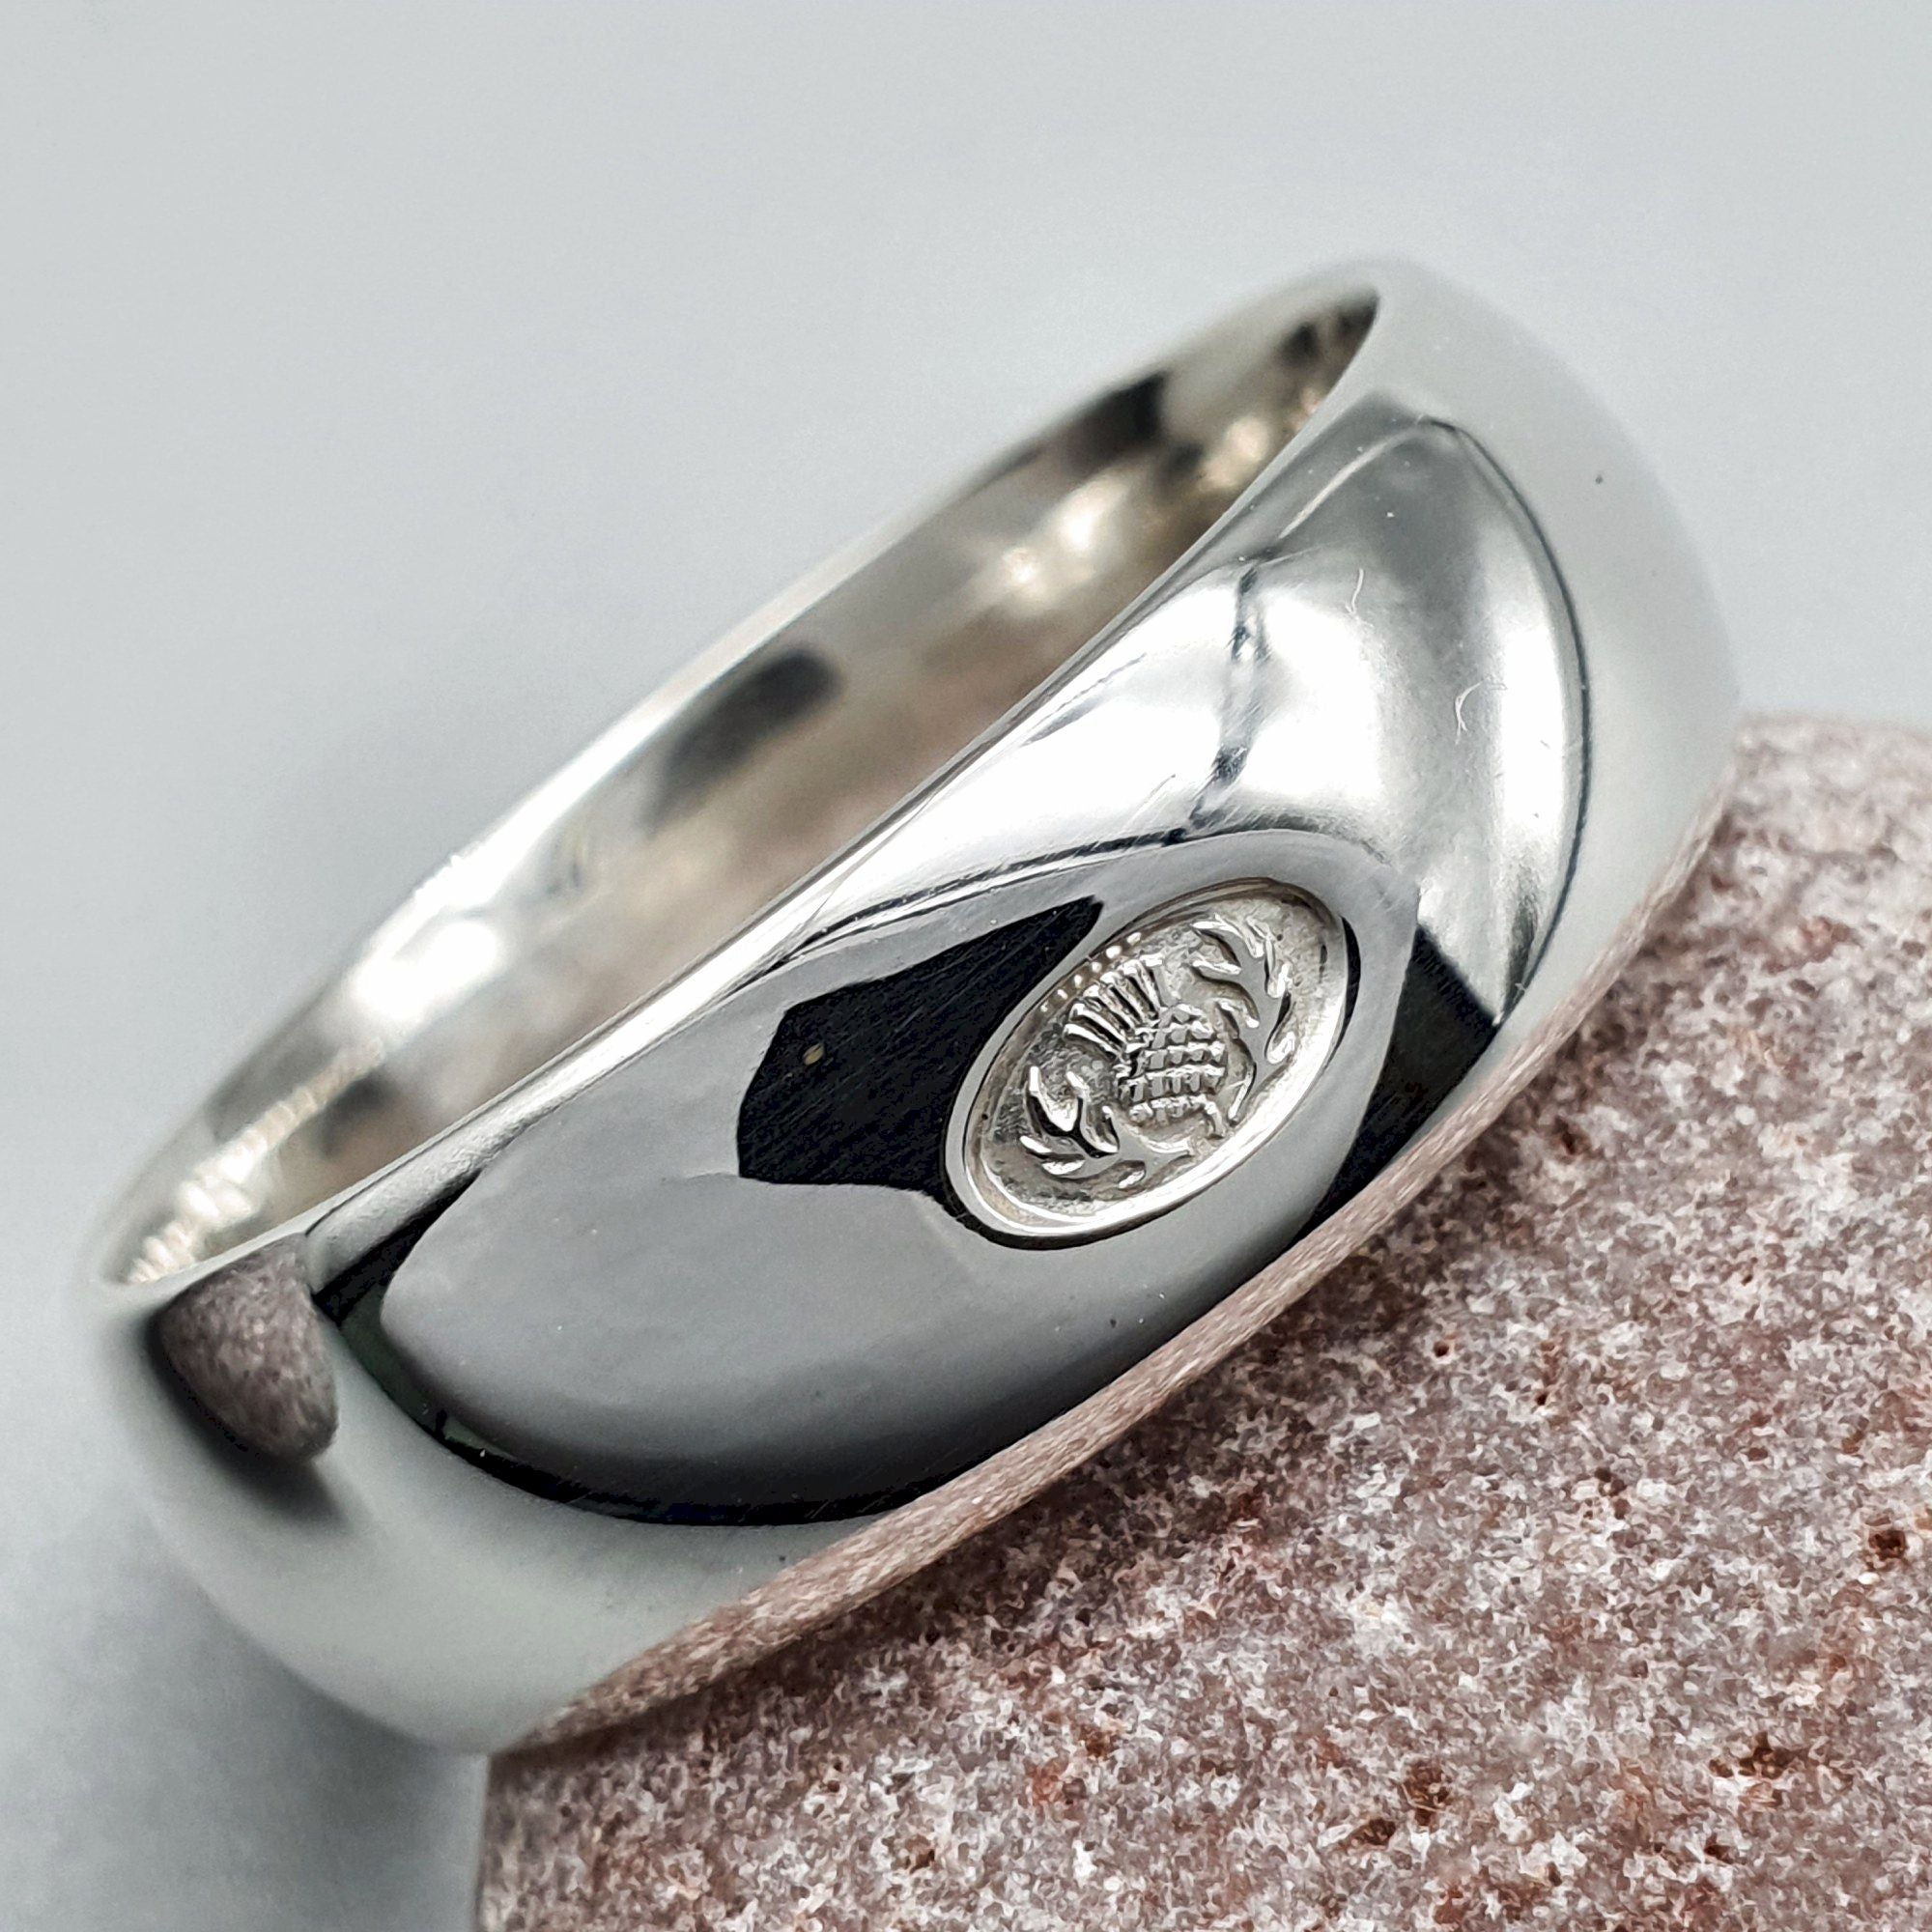 It is just a graphic of Wedding ring 50mm to 50mm Scottish Thistle white gold wide band